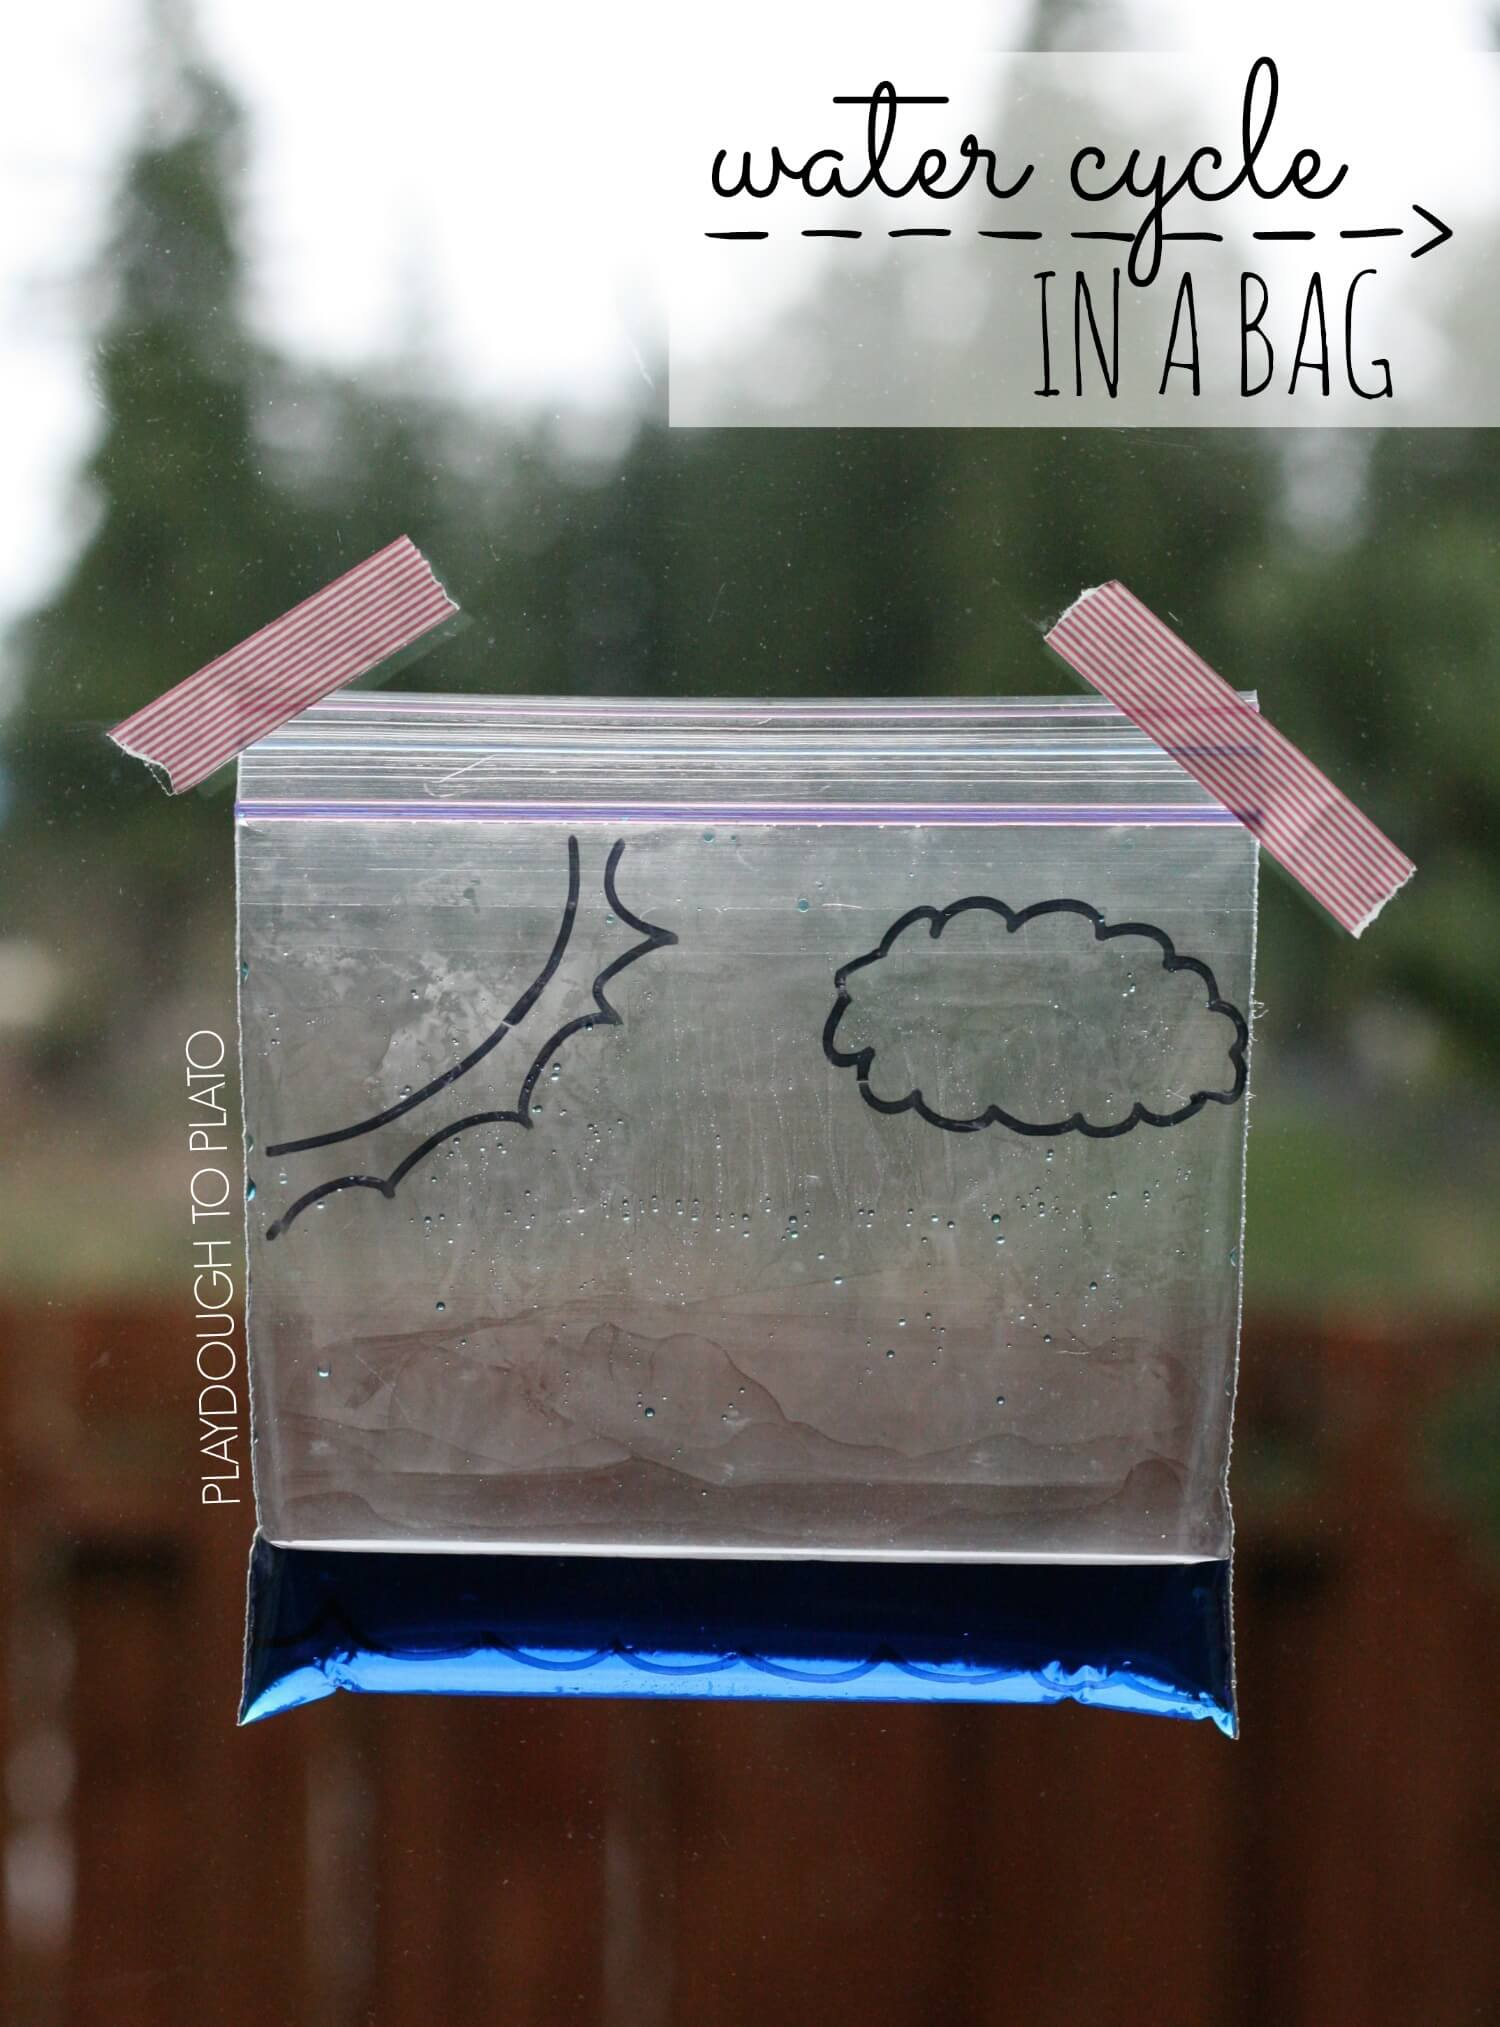 Water Cycle In A Bag